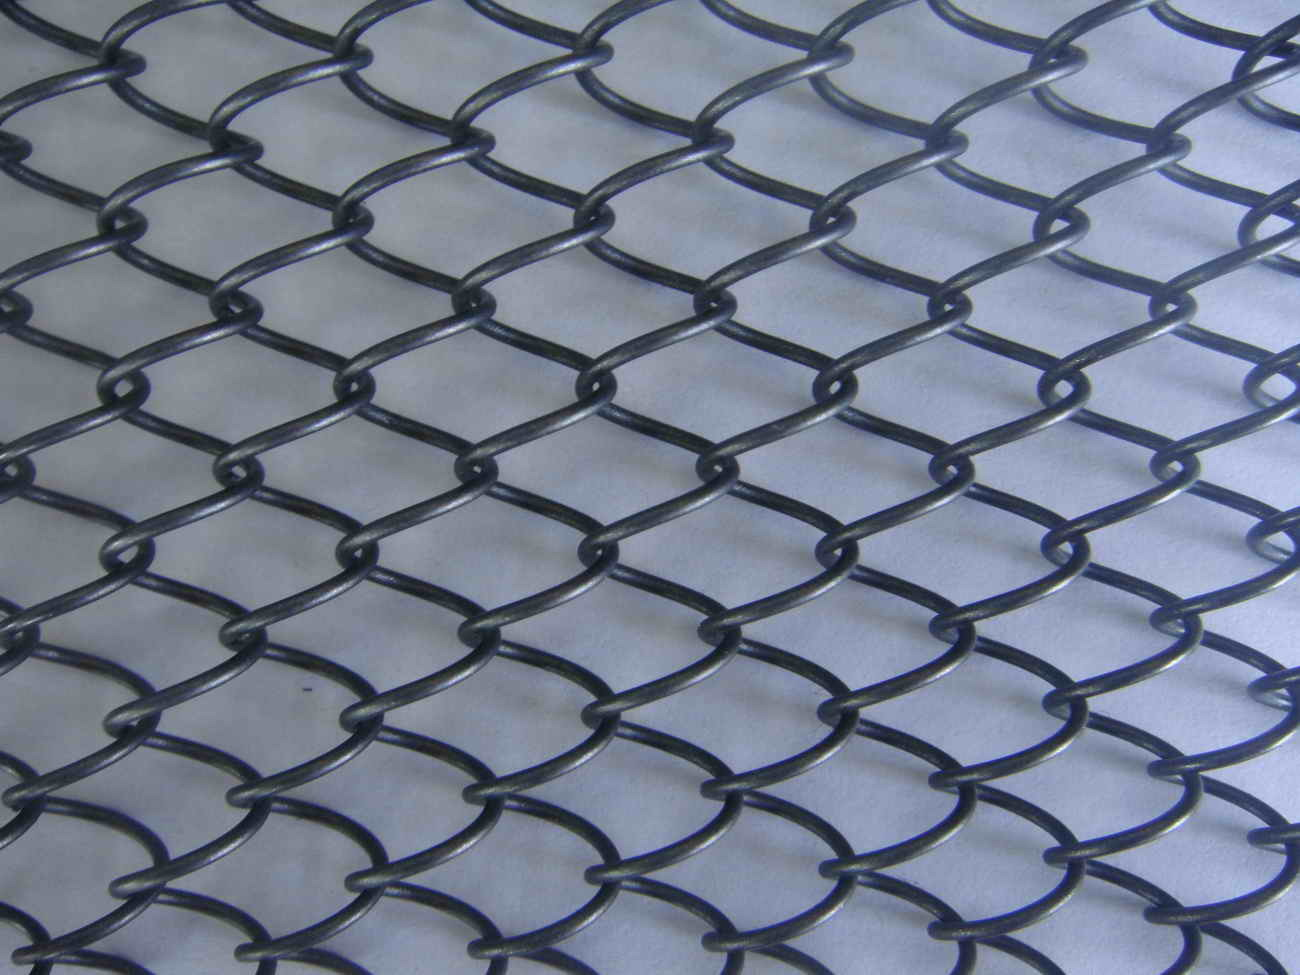 Decorative Mesh  China Decorative Mesh, Decorative Product. Decorated Flocked Christmas Trees. Small Decorative Table. Console Table Decor. Decorative 3 Ring Binders. Decorative Aluminum Sheet Metal. Cheap Rooms In Myrtle Beach. Luxury Dining Room Furniture. Dorm Room Storage